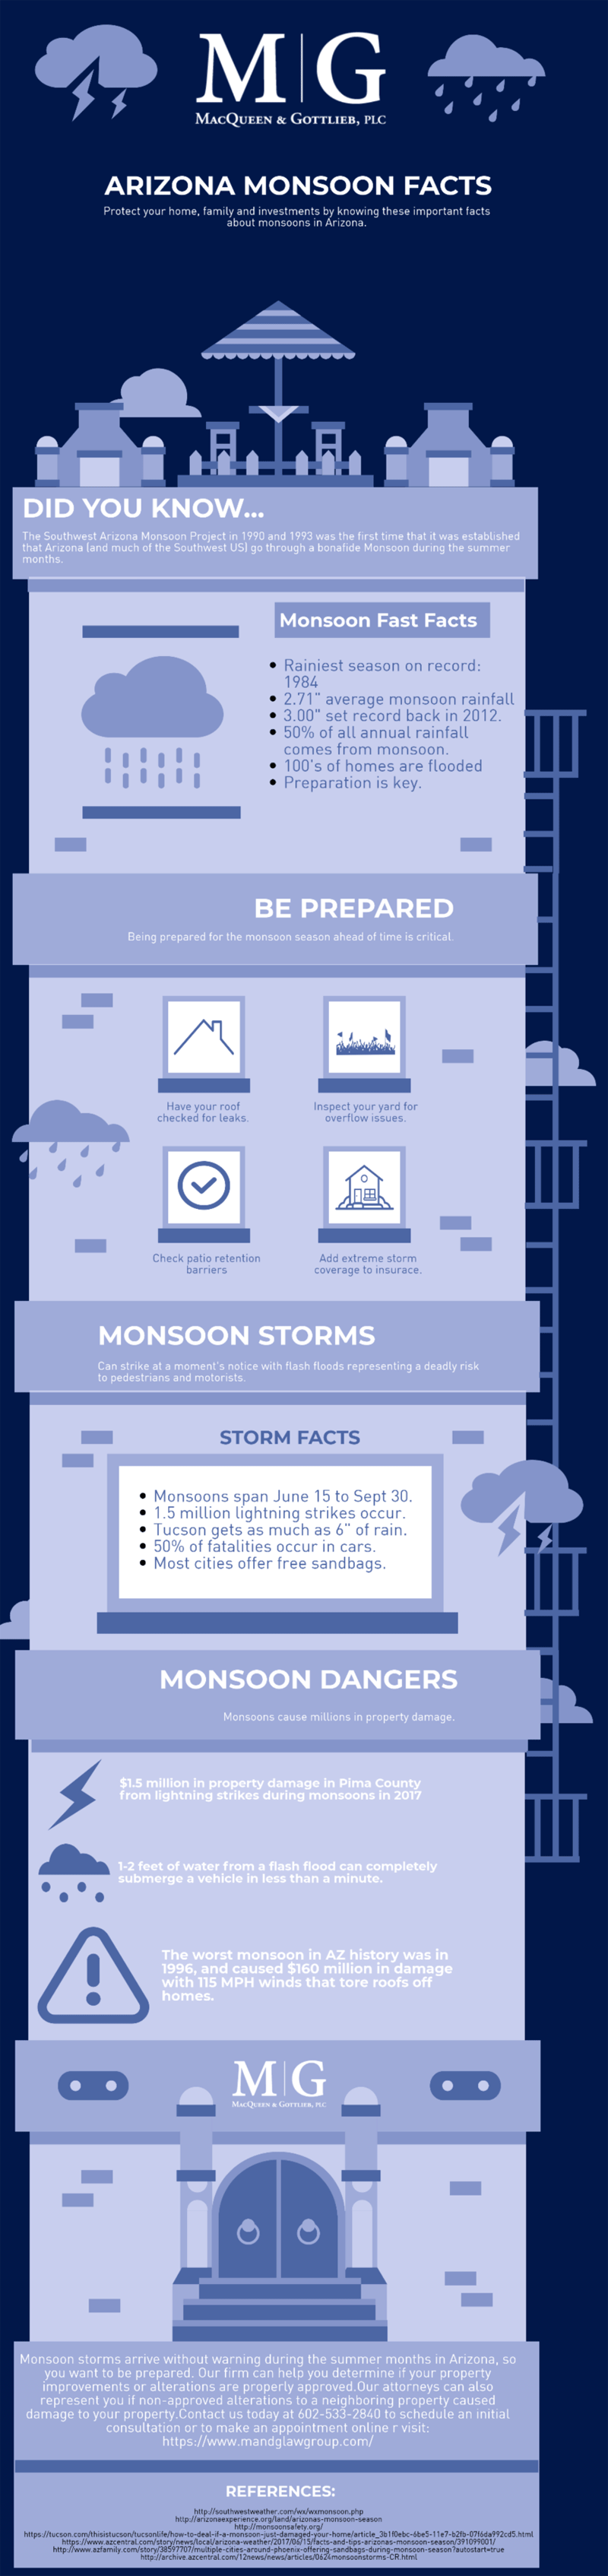 Monsoon Season and Water Damage in Arizona